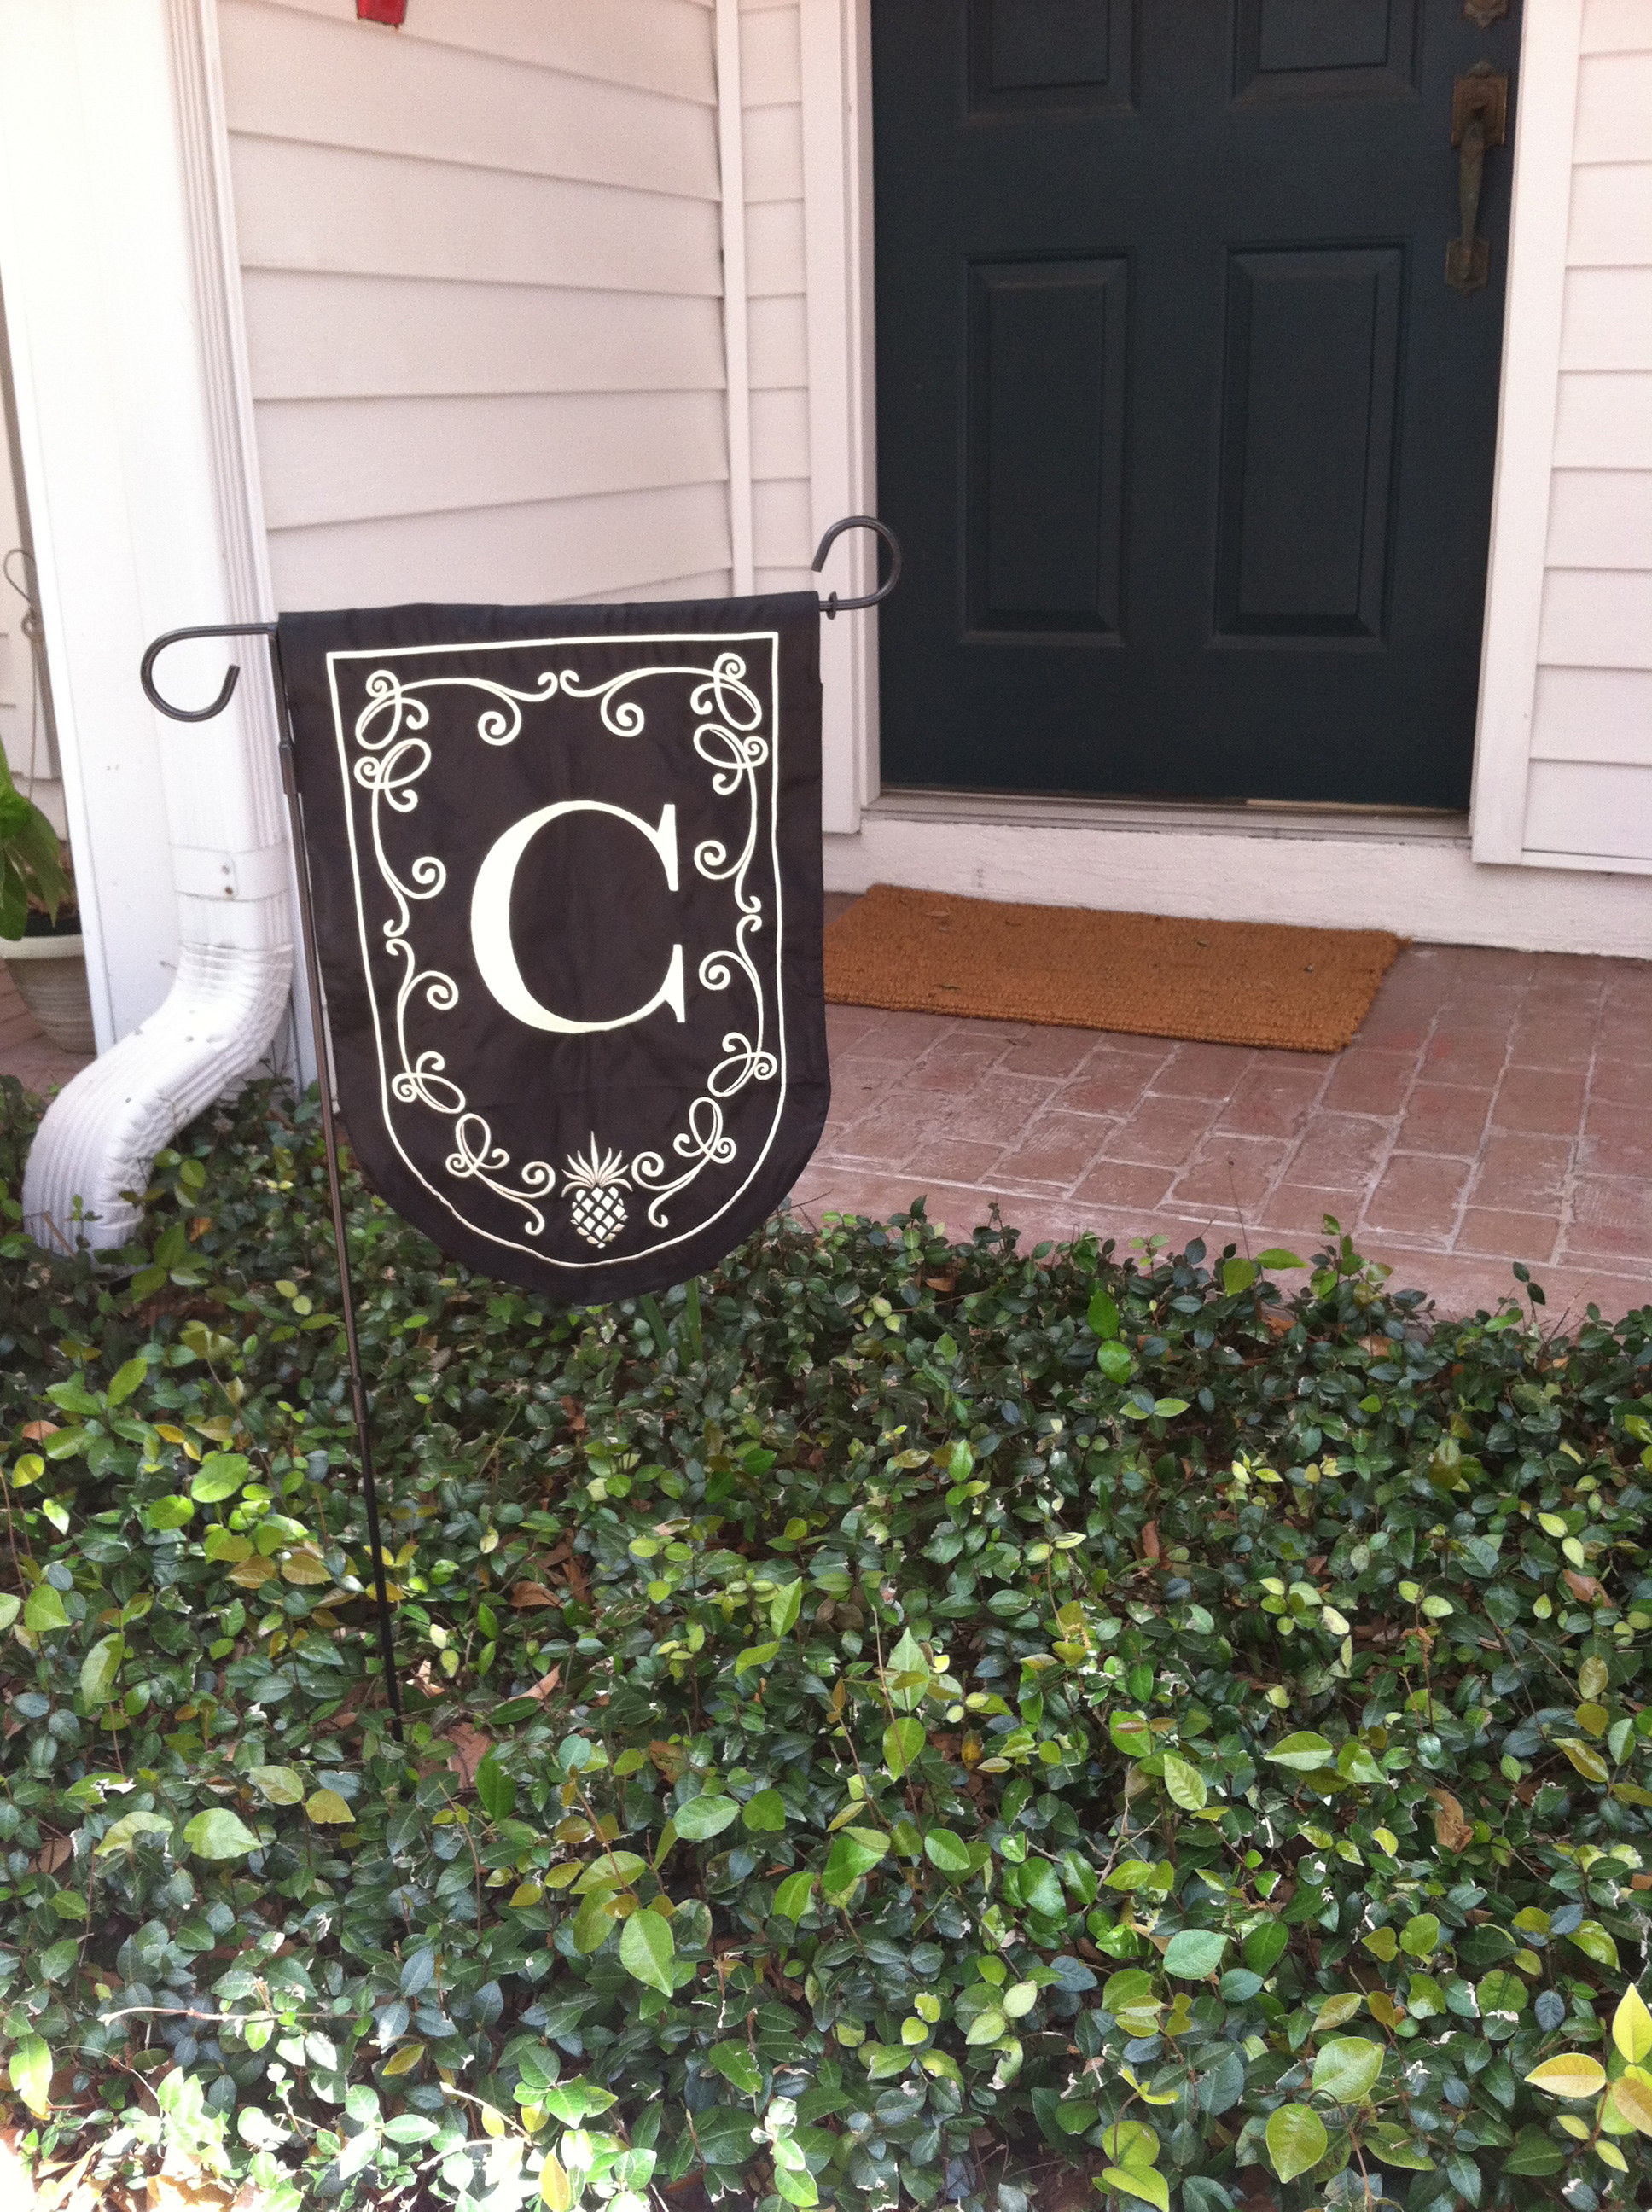 Good On Wednesday Morning After The First HOA Meeting Since Weu0027ve Lived Here, I  Walked Outside To Find Our Small Garden Flag Moved To Another Position In  Our ...